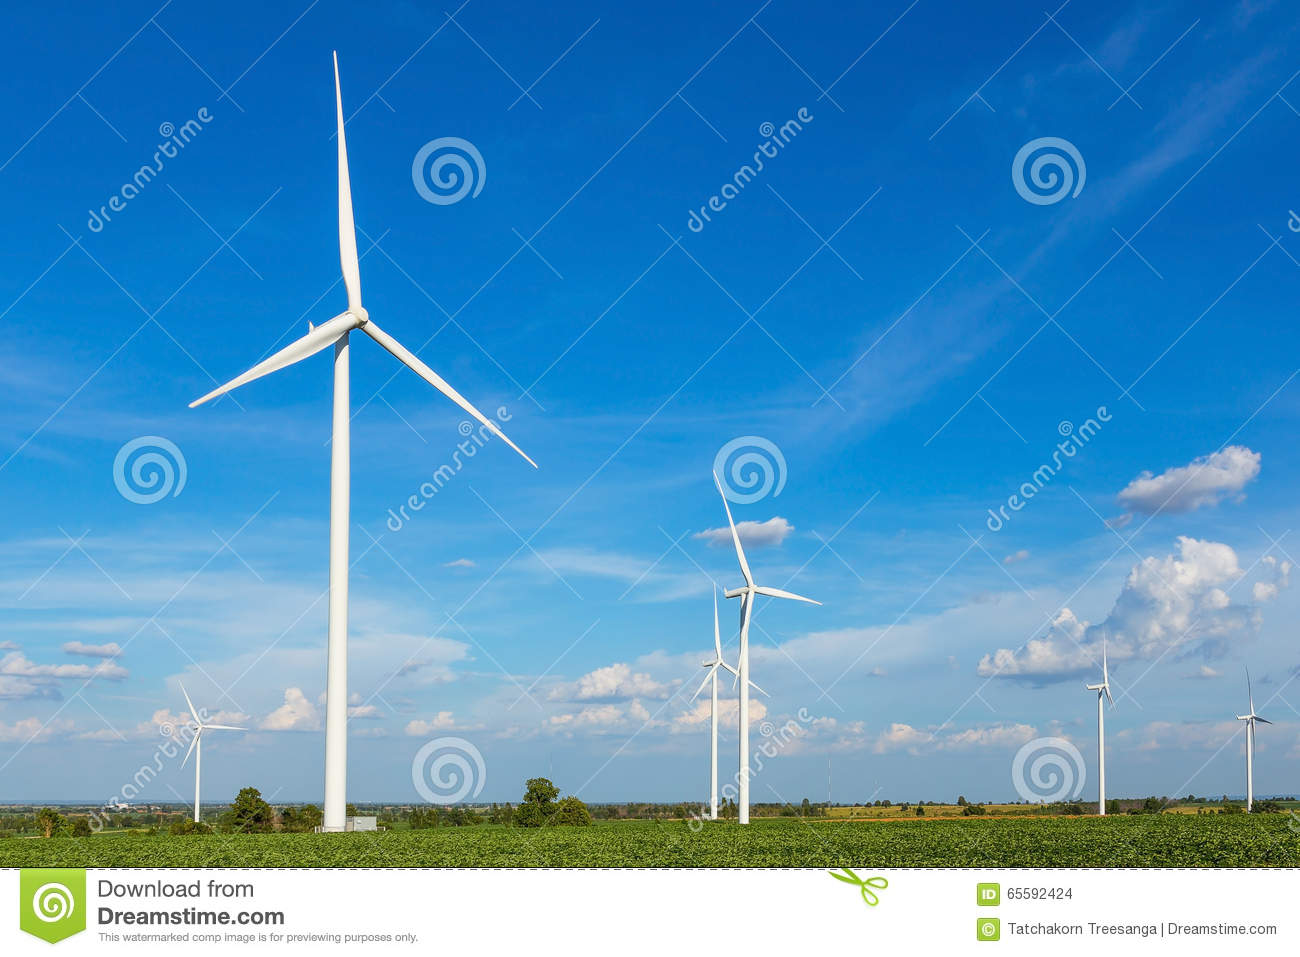 Wind turbines in the field against blue sky generating electricity